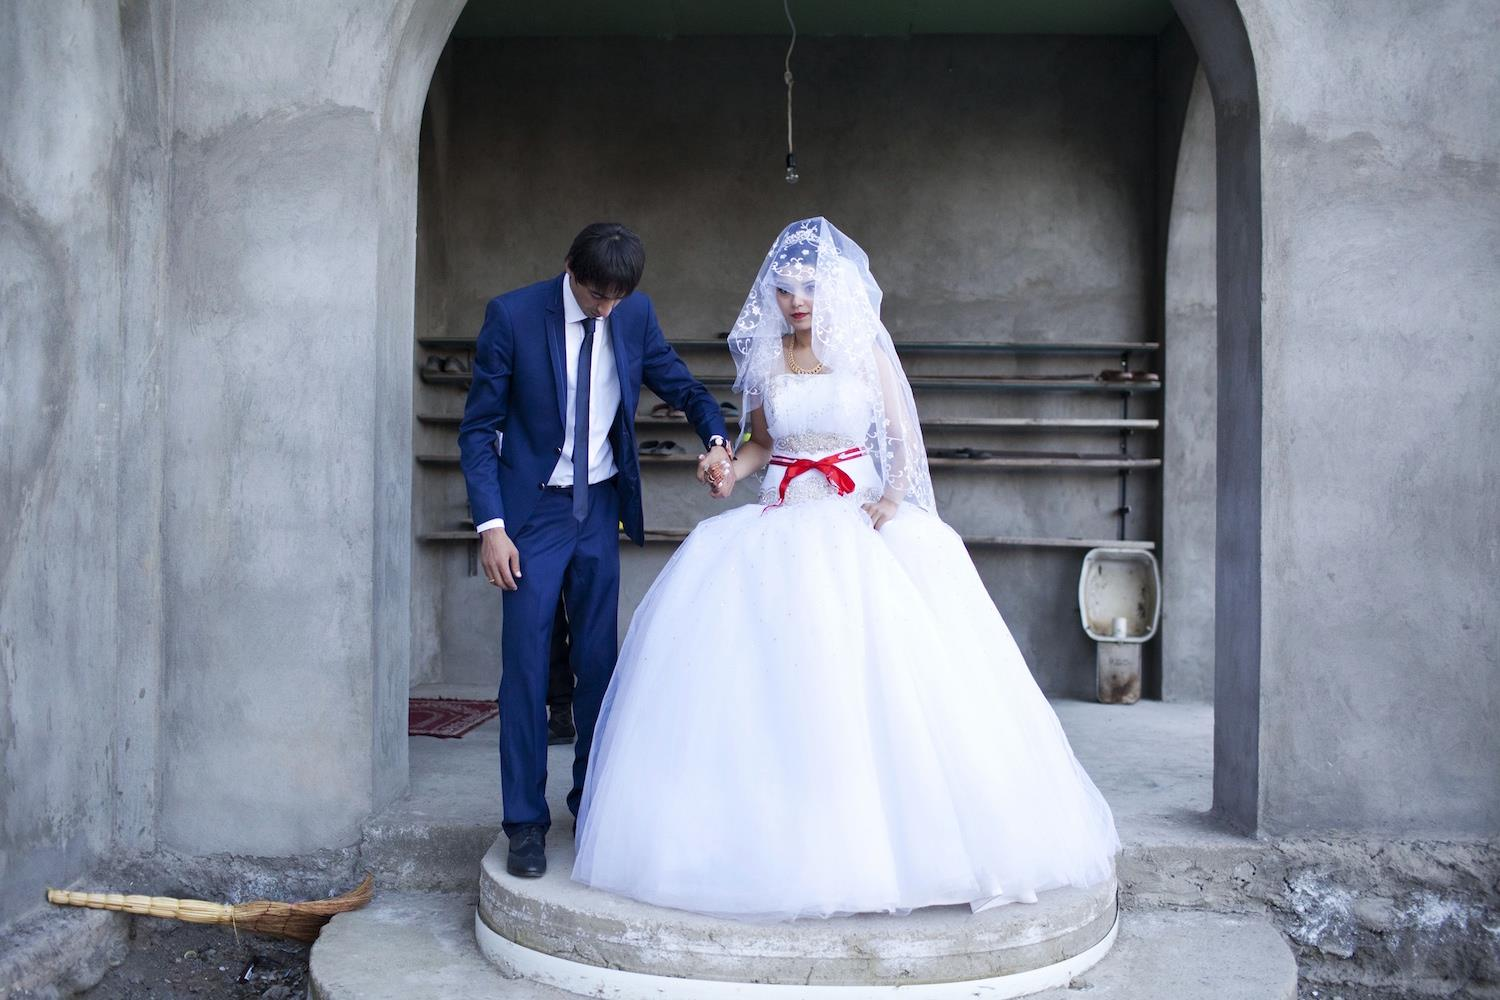 Daro Sulakauri. Early marriages in Georgia